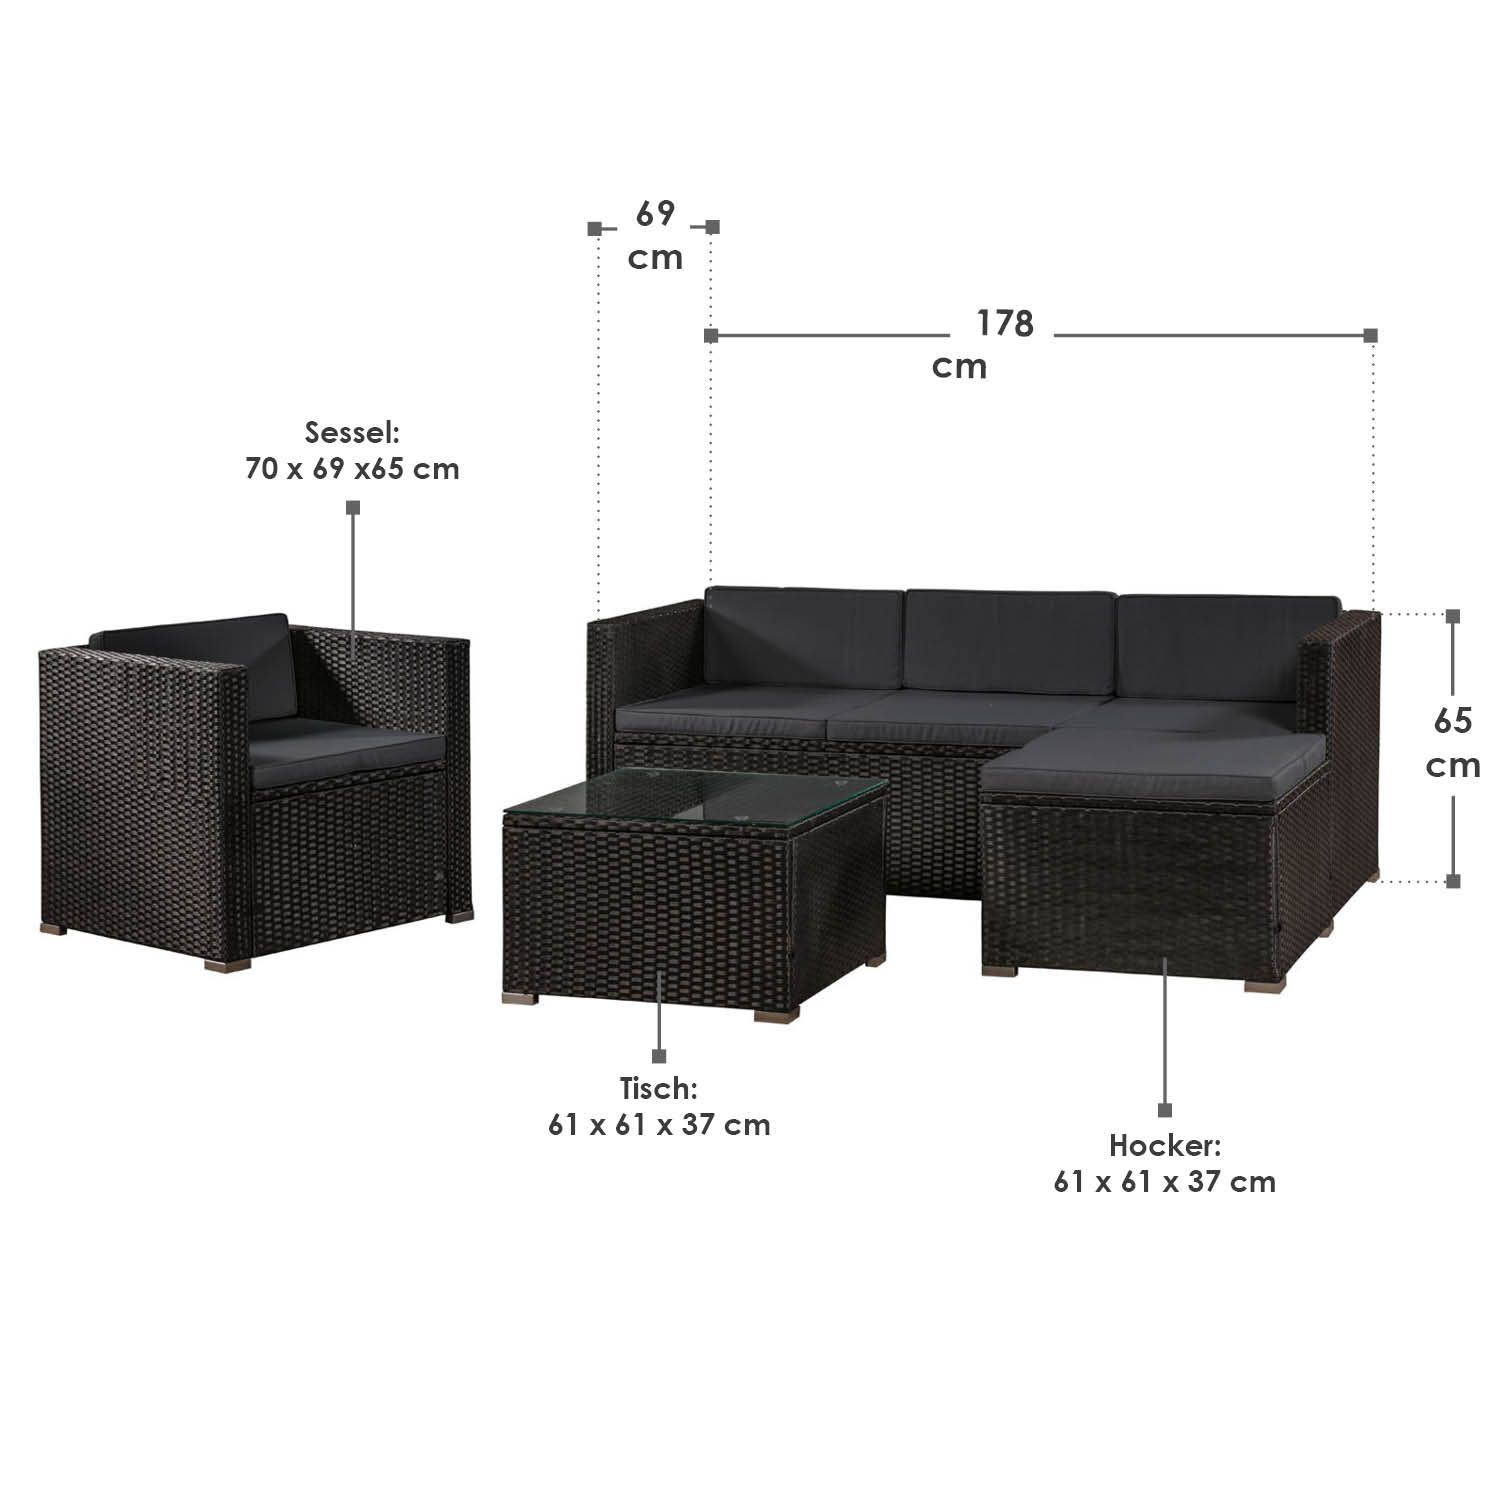 polyrattan gartenm bel lounge rattan gartenset sitzgruppe rattanm bel artlife ebay. Black Bedroom Furniture Sets. Home Design Ideas